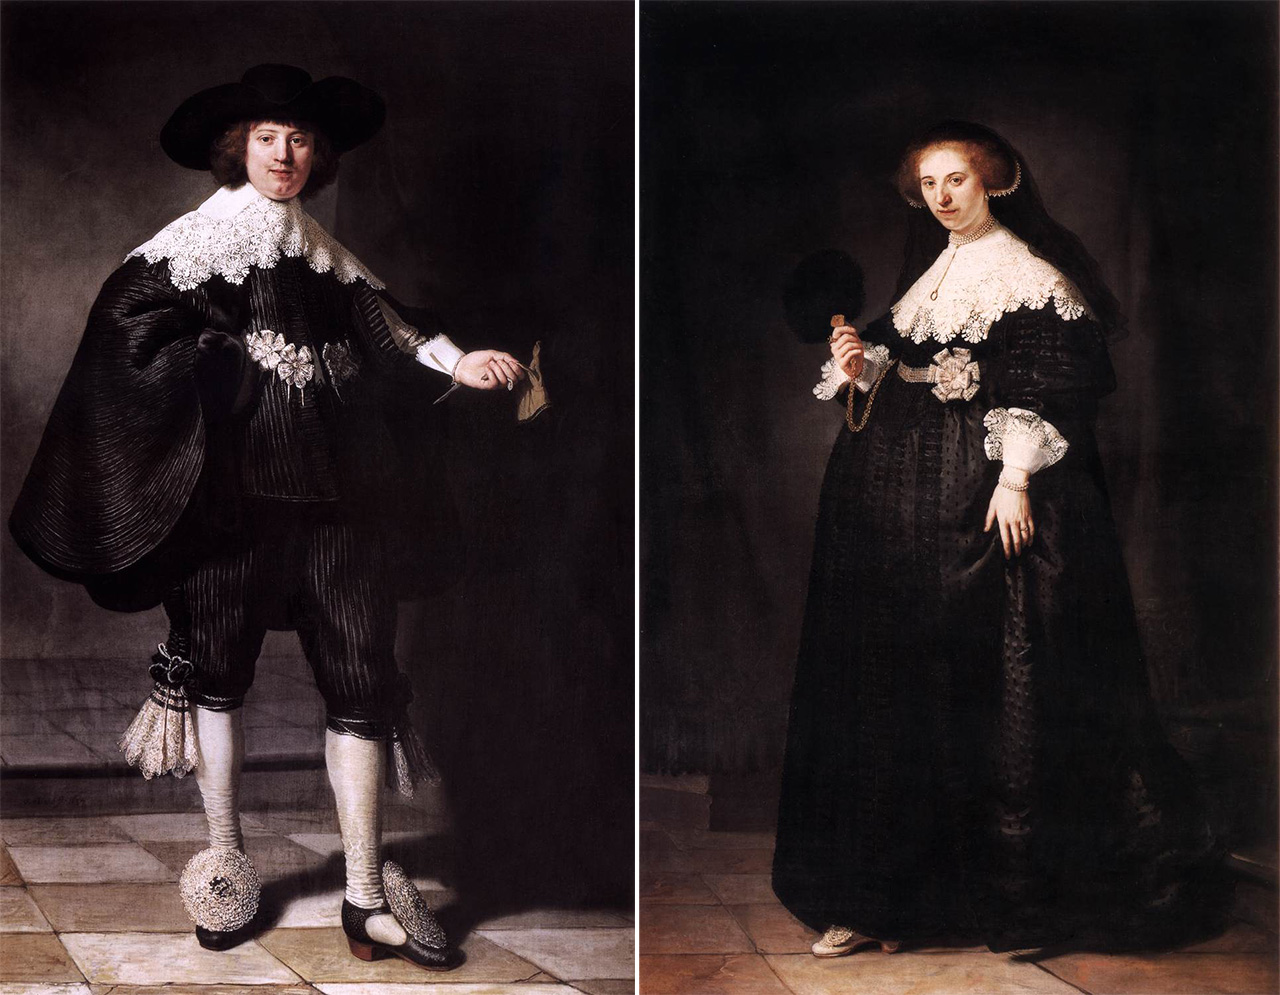 """Rembrandt's """"Portrait of Marten Soolmans"""" and """"Portrait of Oopjen Coppit"""" were jointly acquired by the Louvre and Rijksmuseum. (images via Wikimedia Commons and Wikimedia Commons)"""